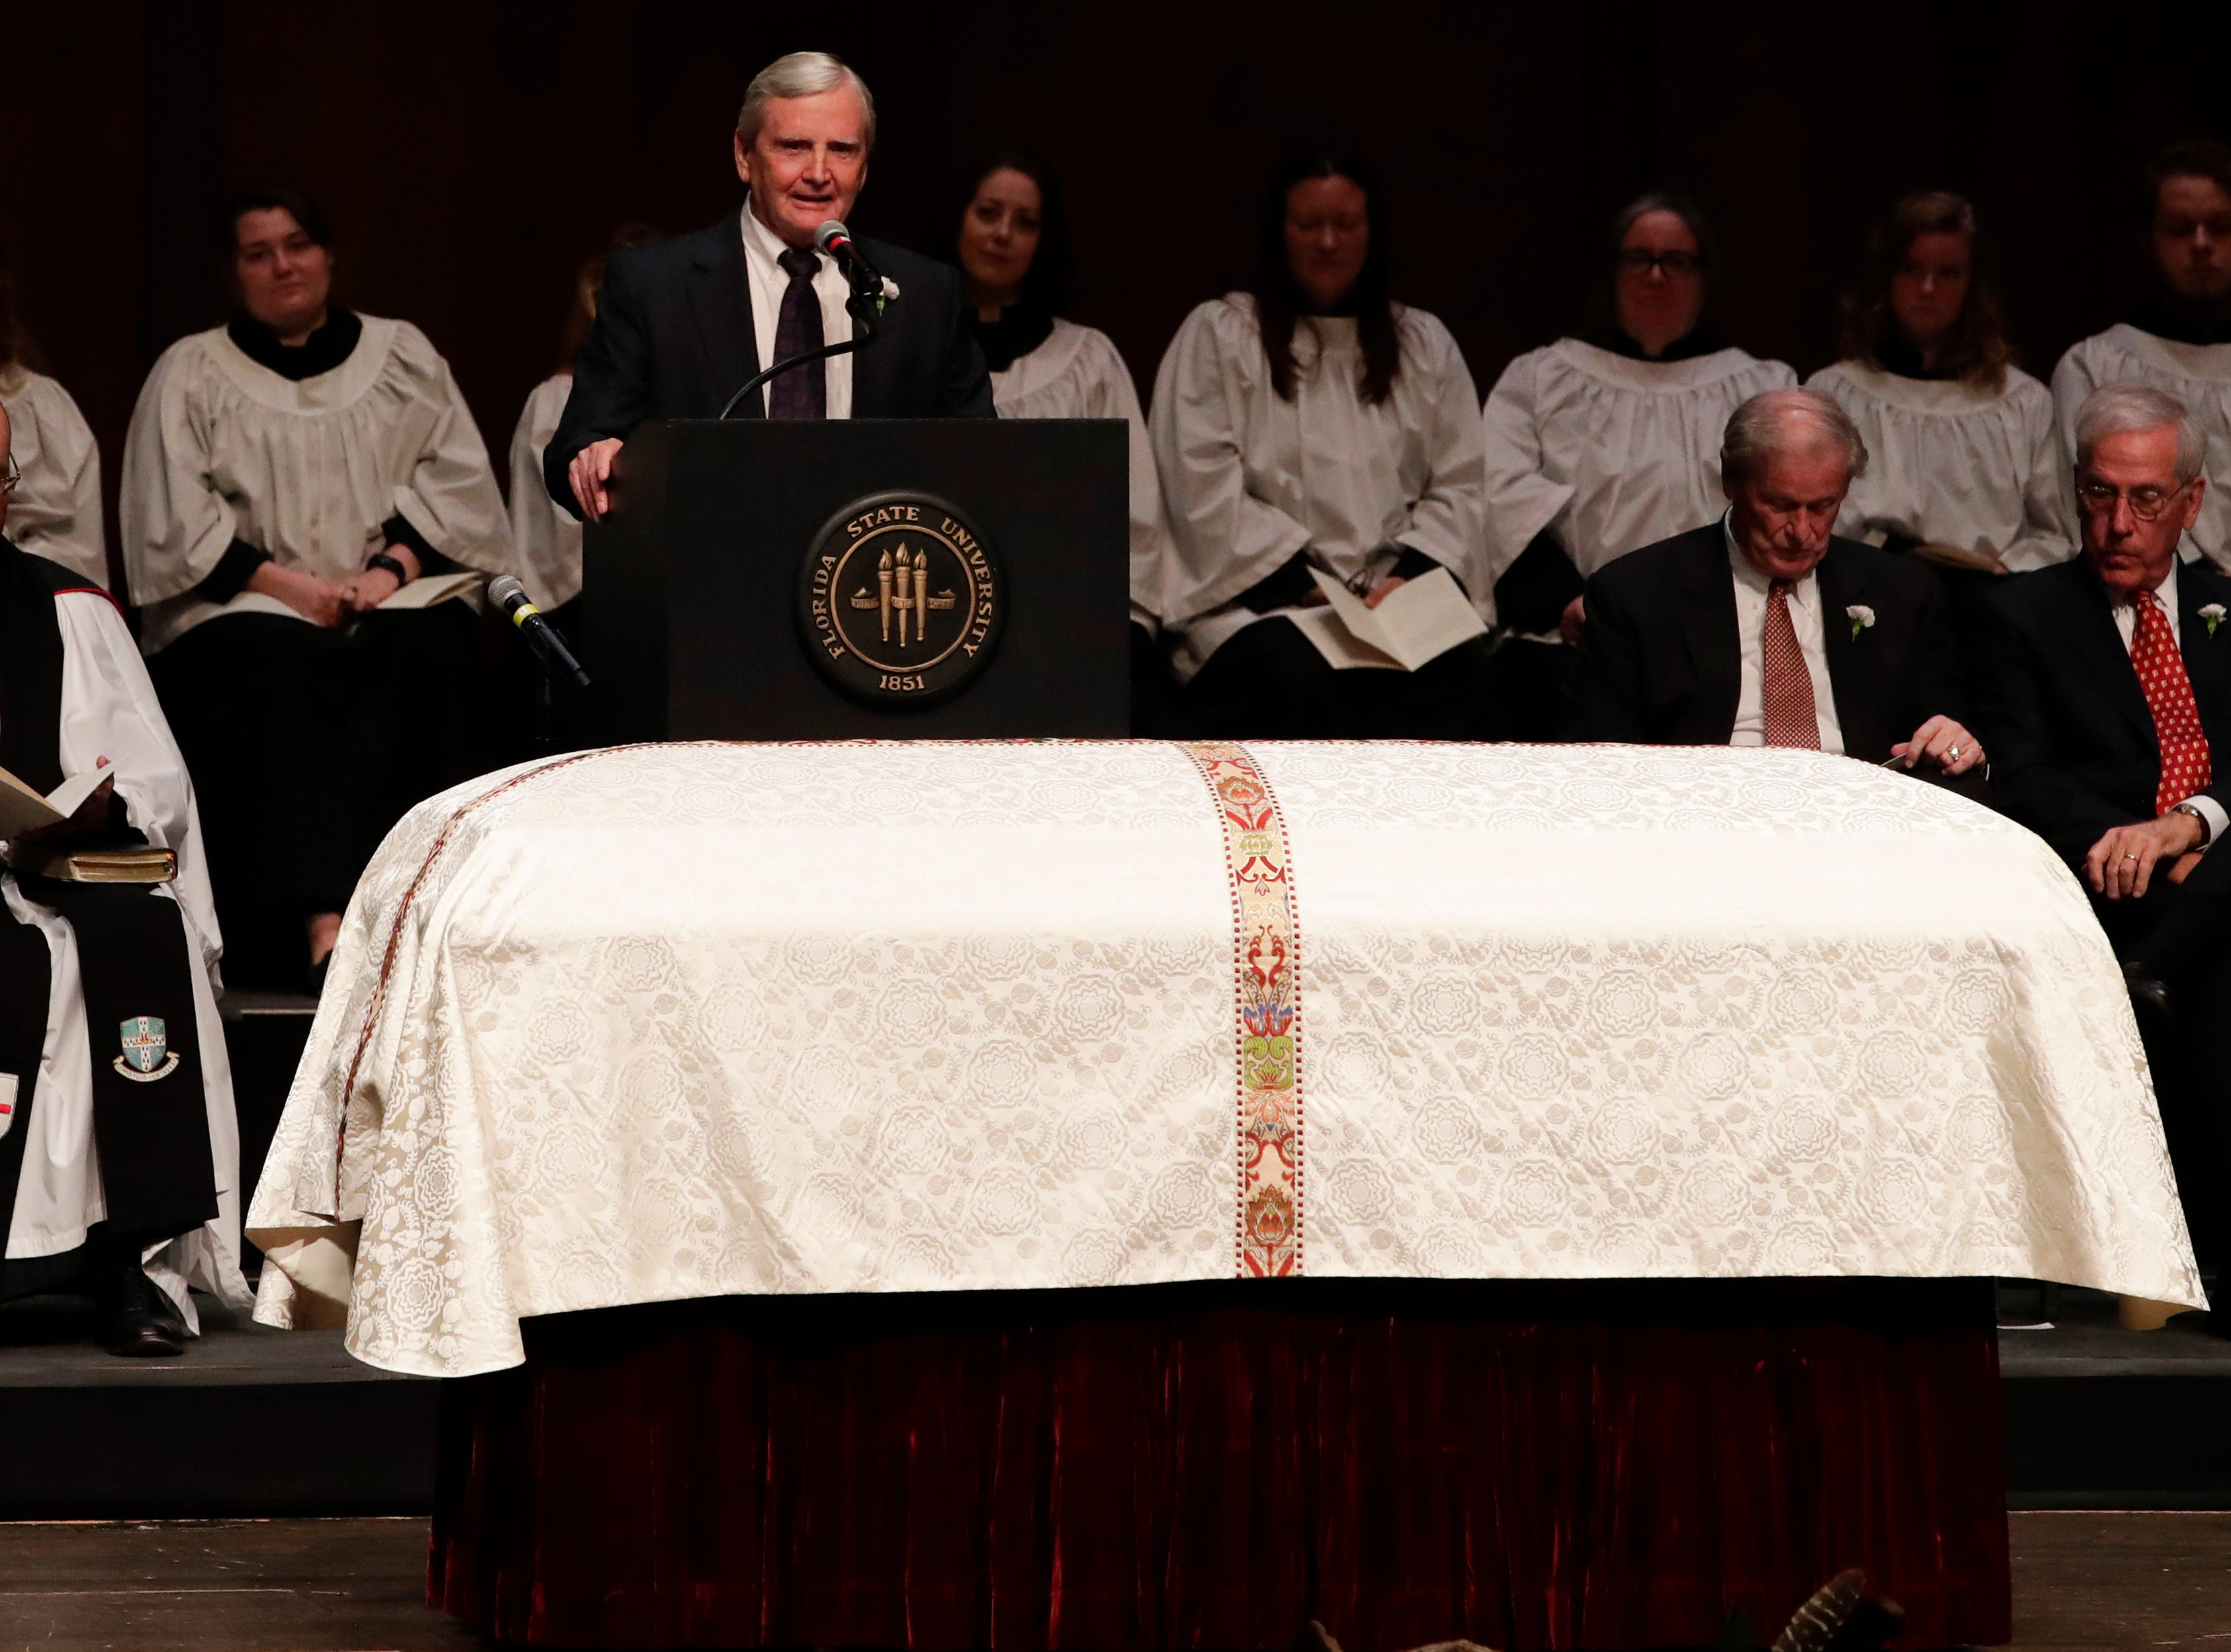 Bob Williamson shares his words of remembrance during a funeral service for Florida State University President Emeritus T.K. Wetherell held at Ruby Diamond Concert Hall Friday, Dec. 21, 2018.